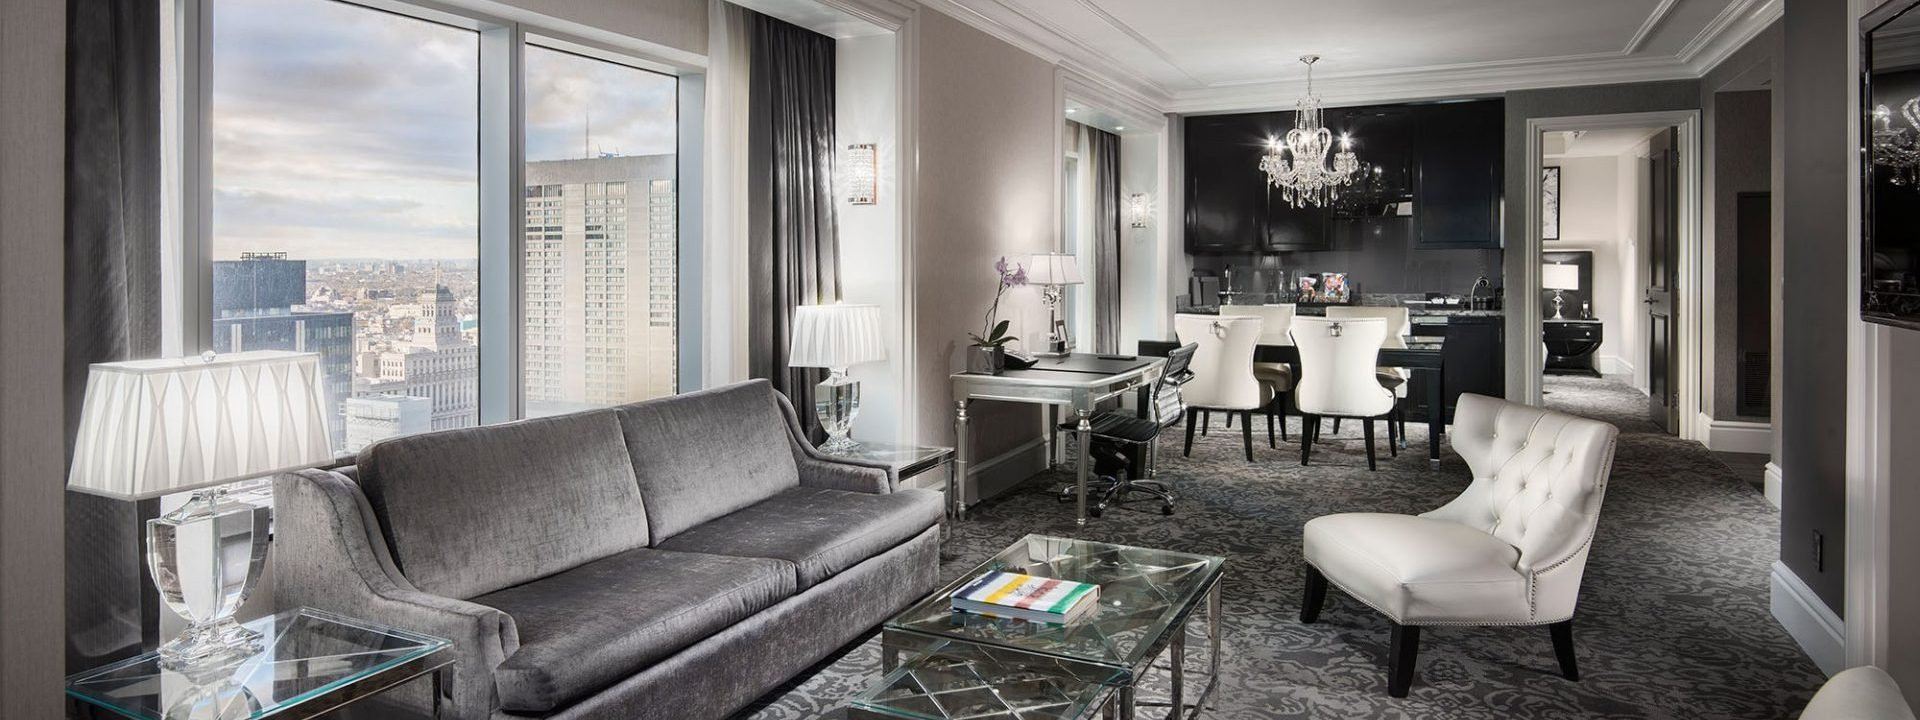 Toronto welcomes the first St. Regis Hotel in Canada